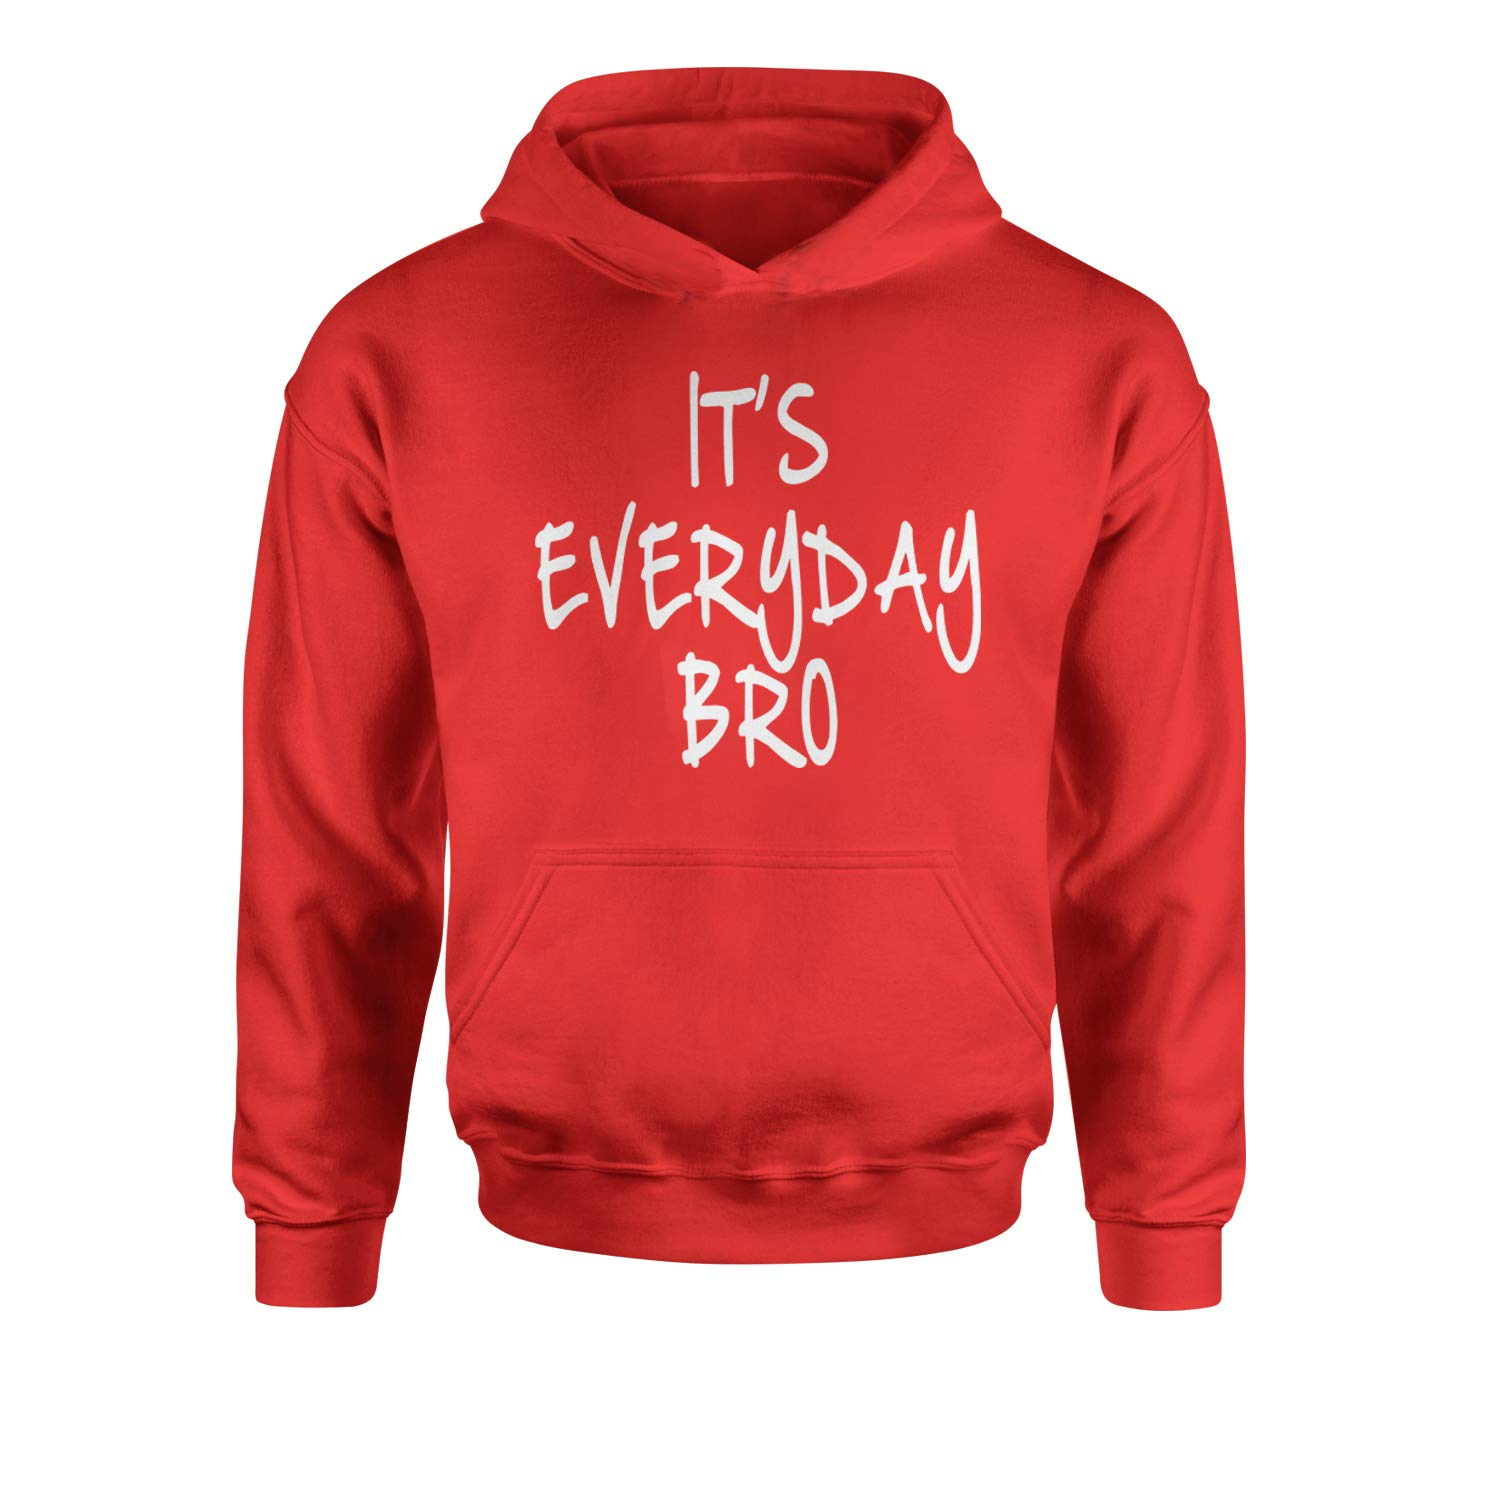 Expression Tees Its Everyday Bro Youth-Sized Hoodie